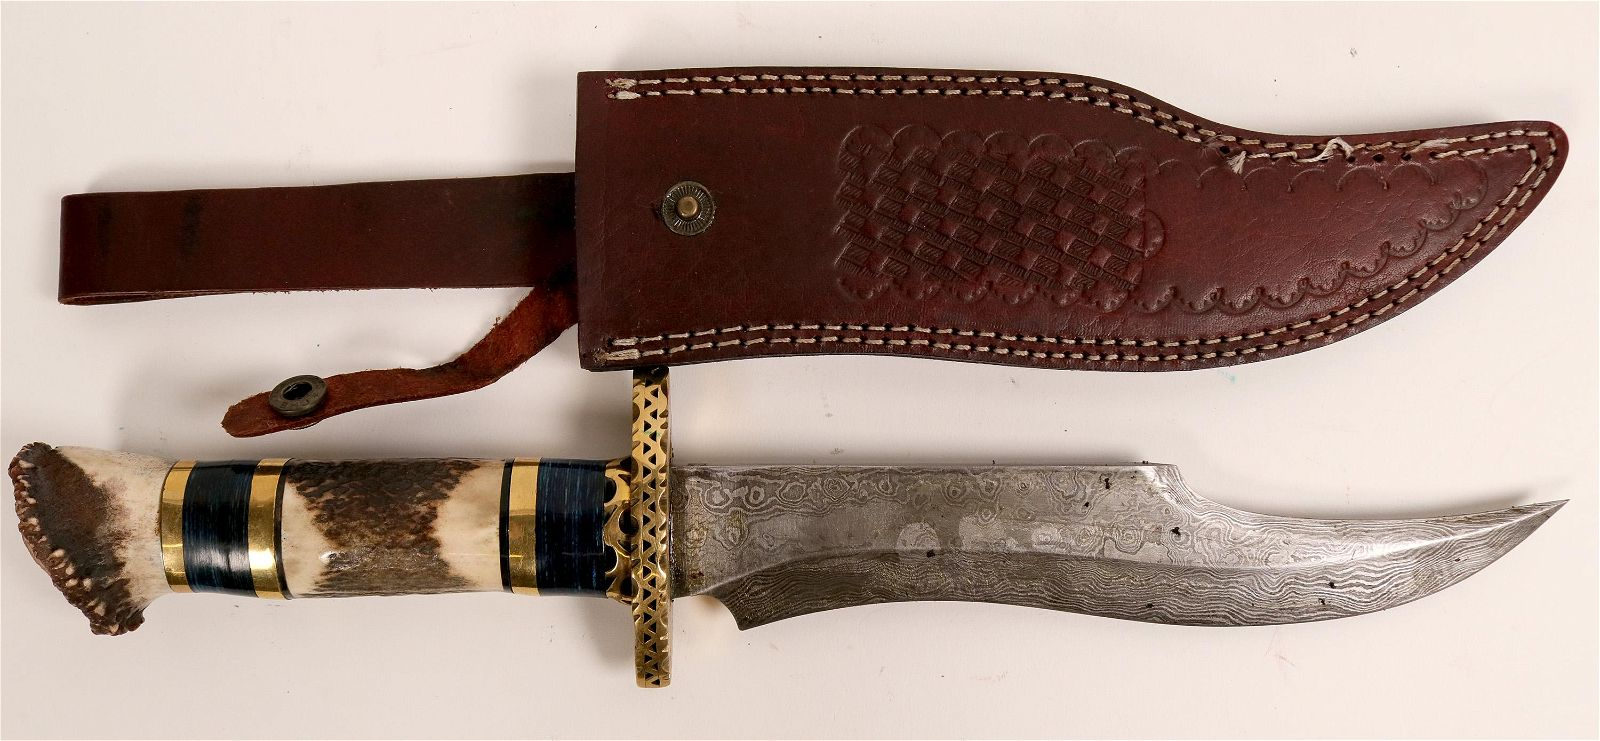 Large Damascus Bowie knife with sheath (114437)